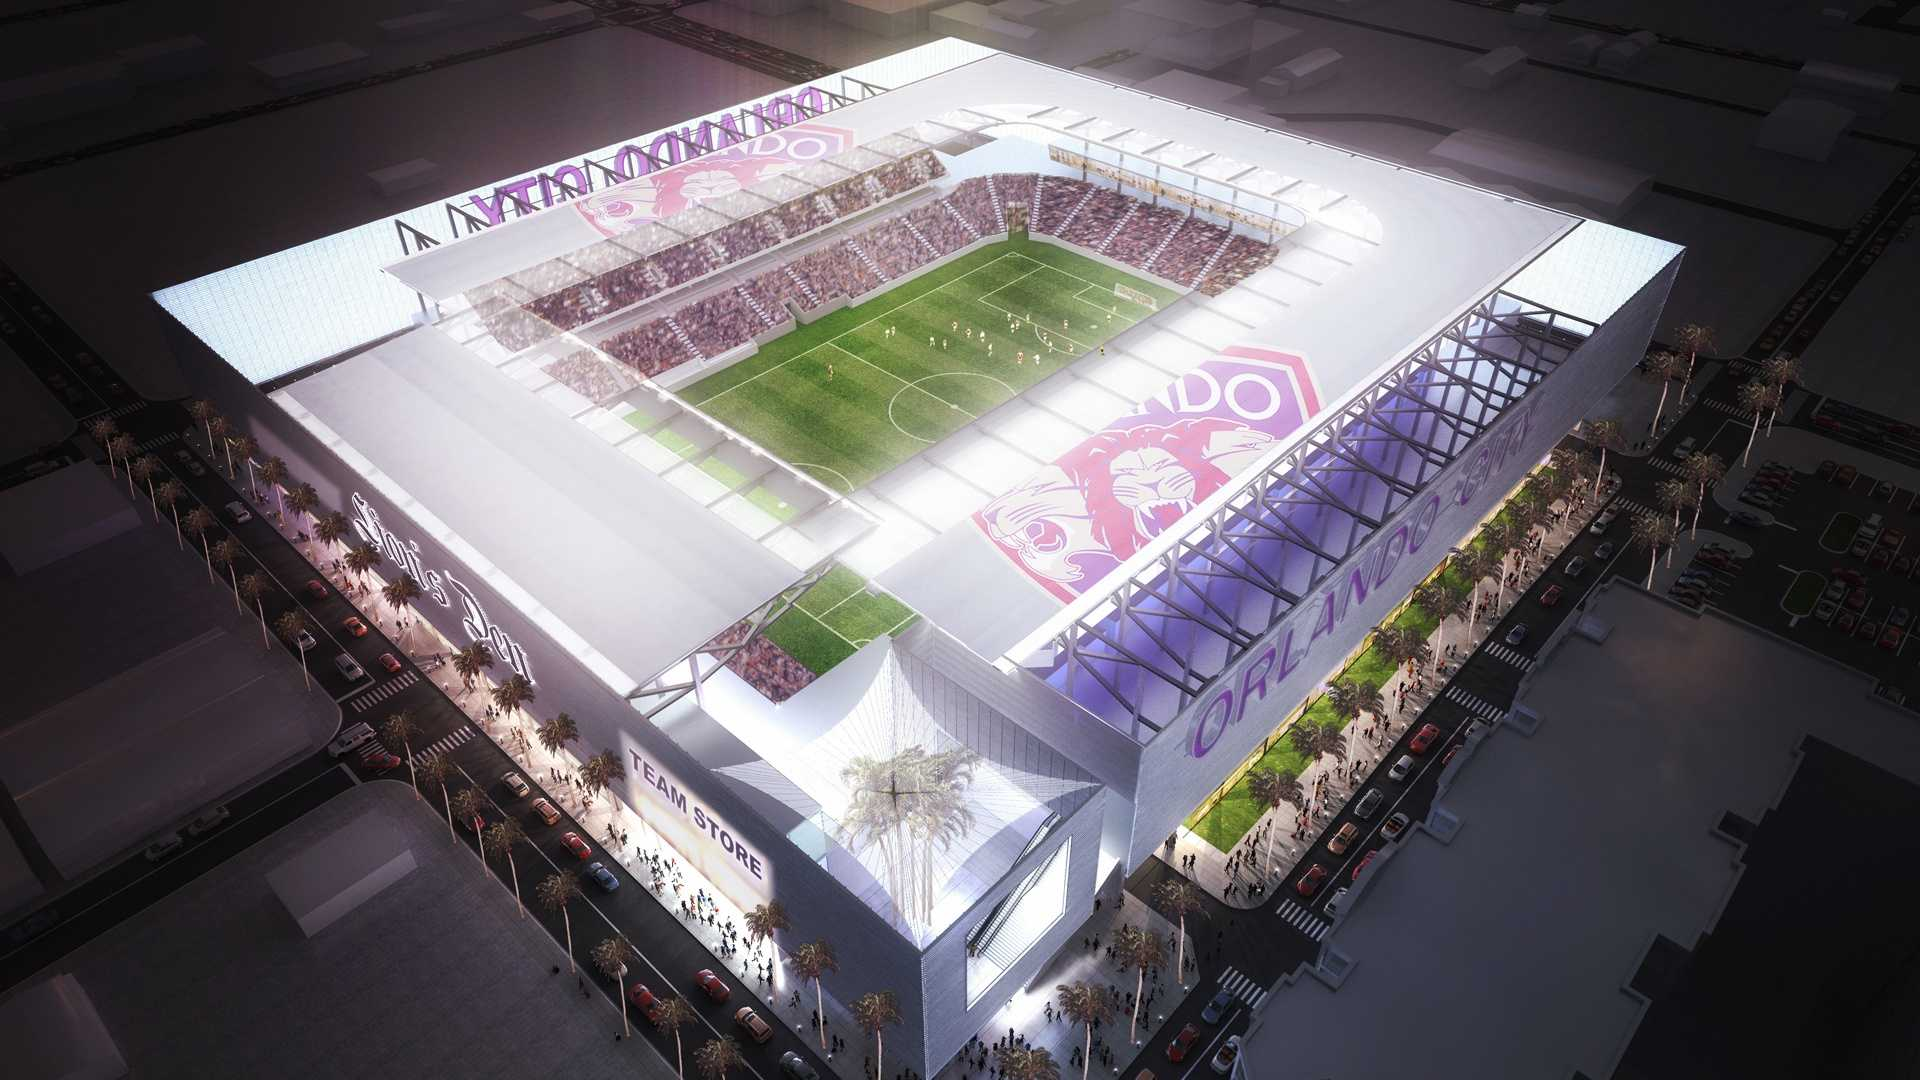 An unauthorized rendering of what the proposed Orlando City Soccer stadium could look like surfaced Monday.